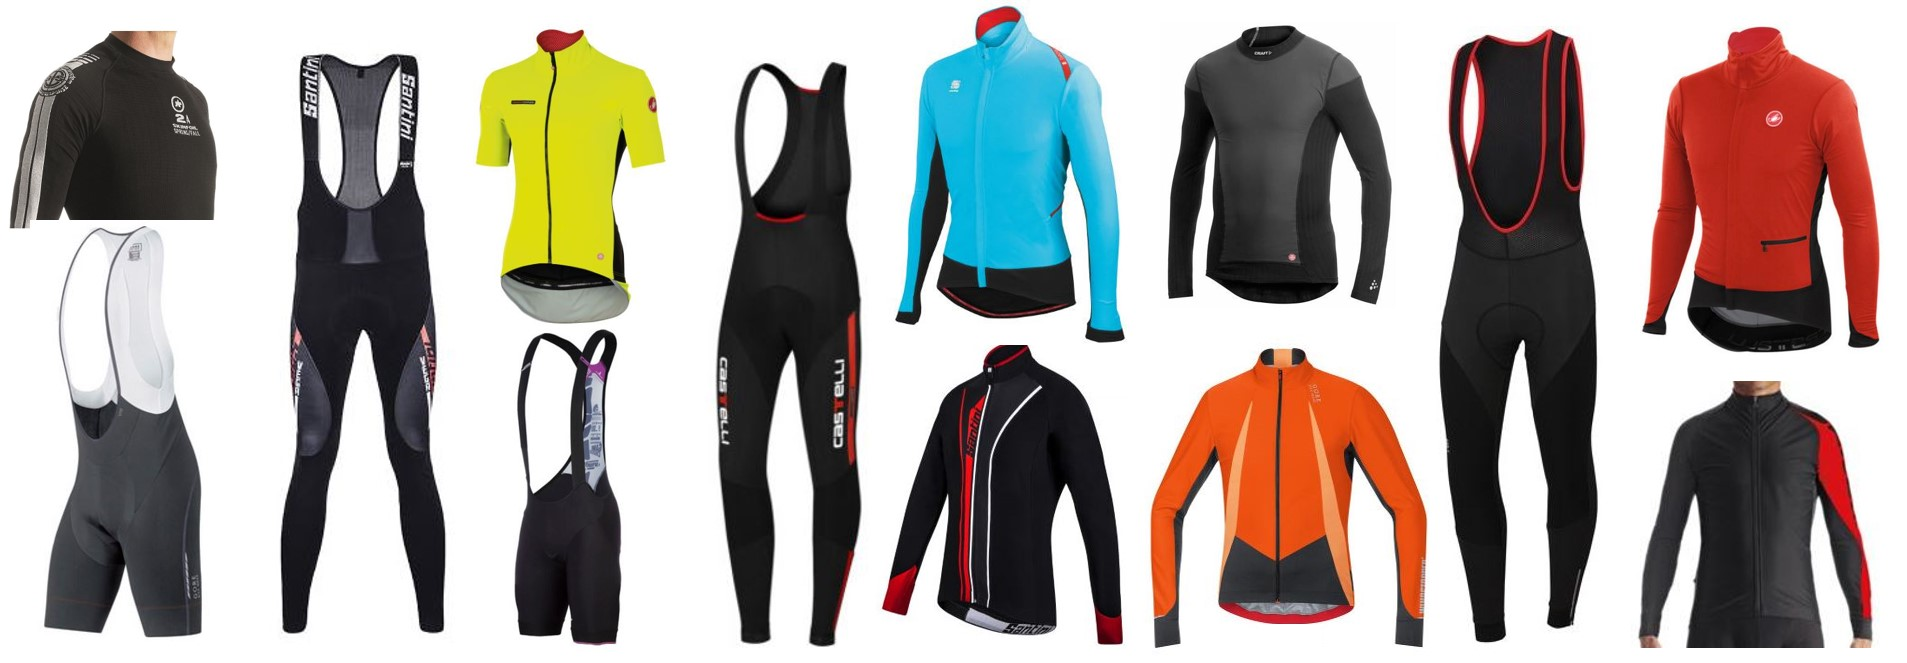 Cycling Clothing The Best Spring And Fall Cycling Kit In The Know Cycling